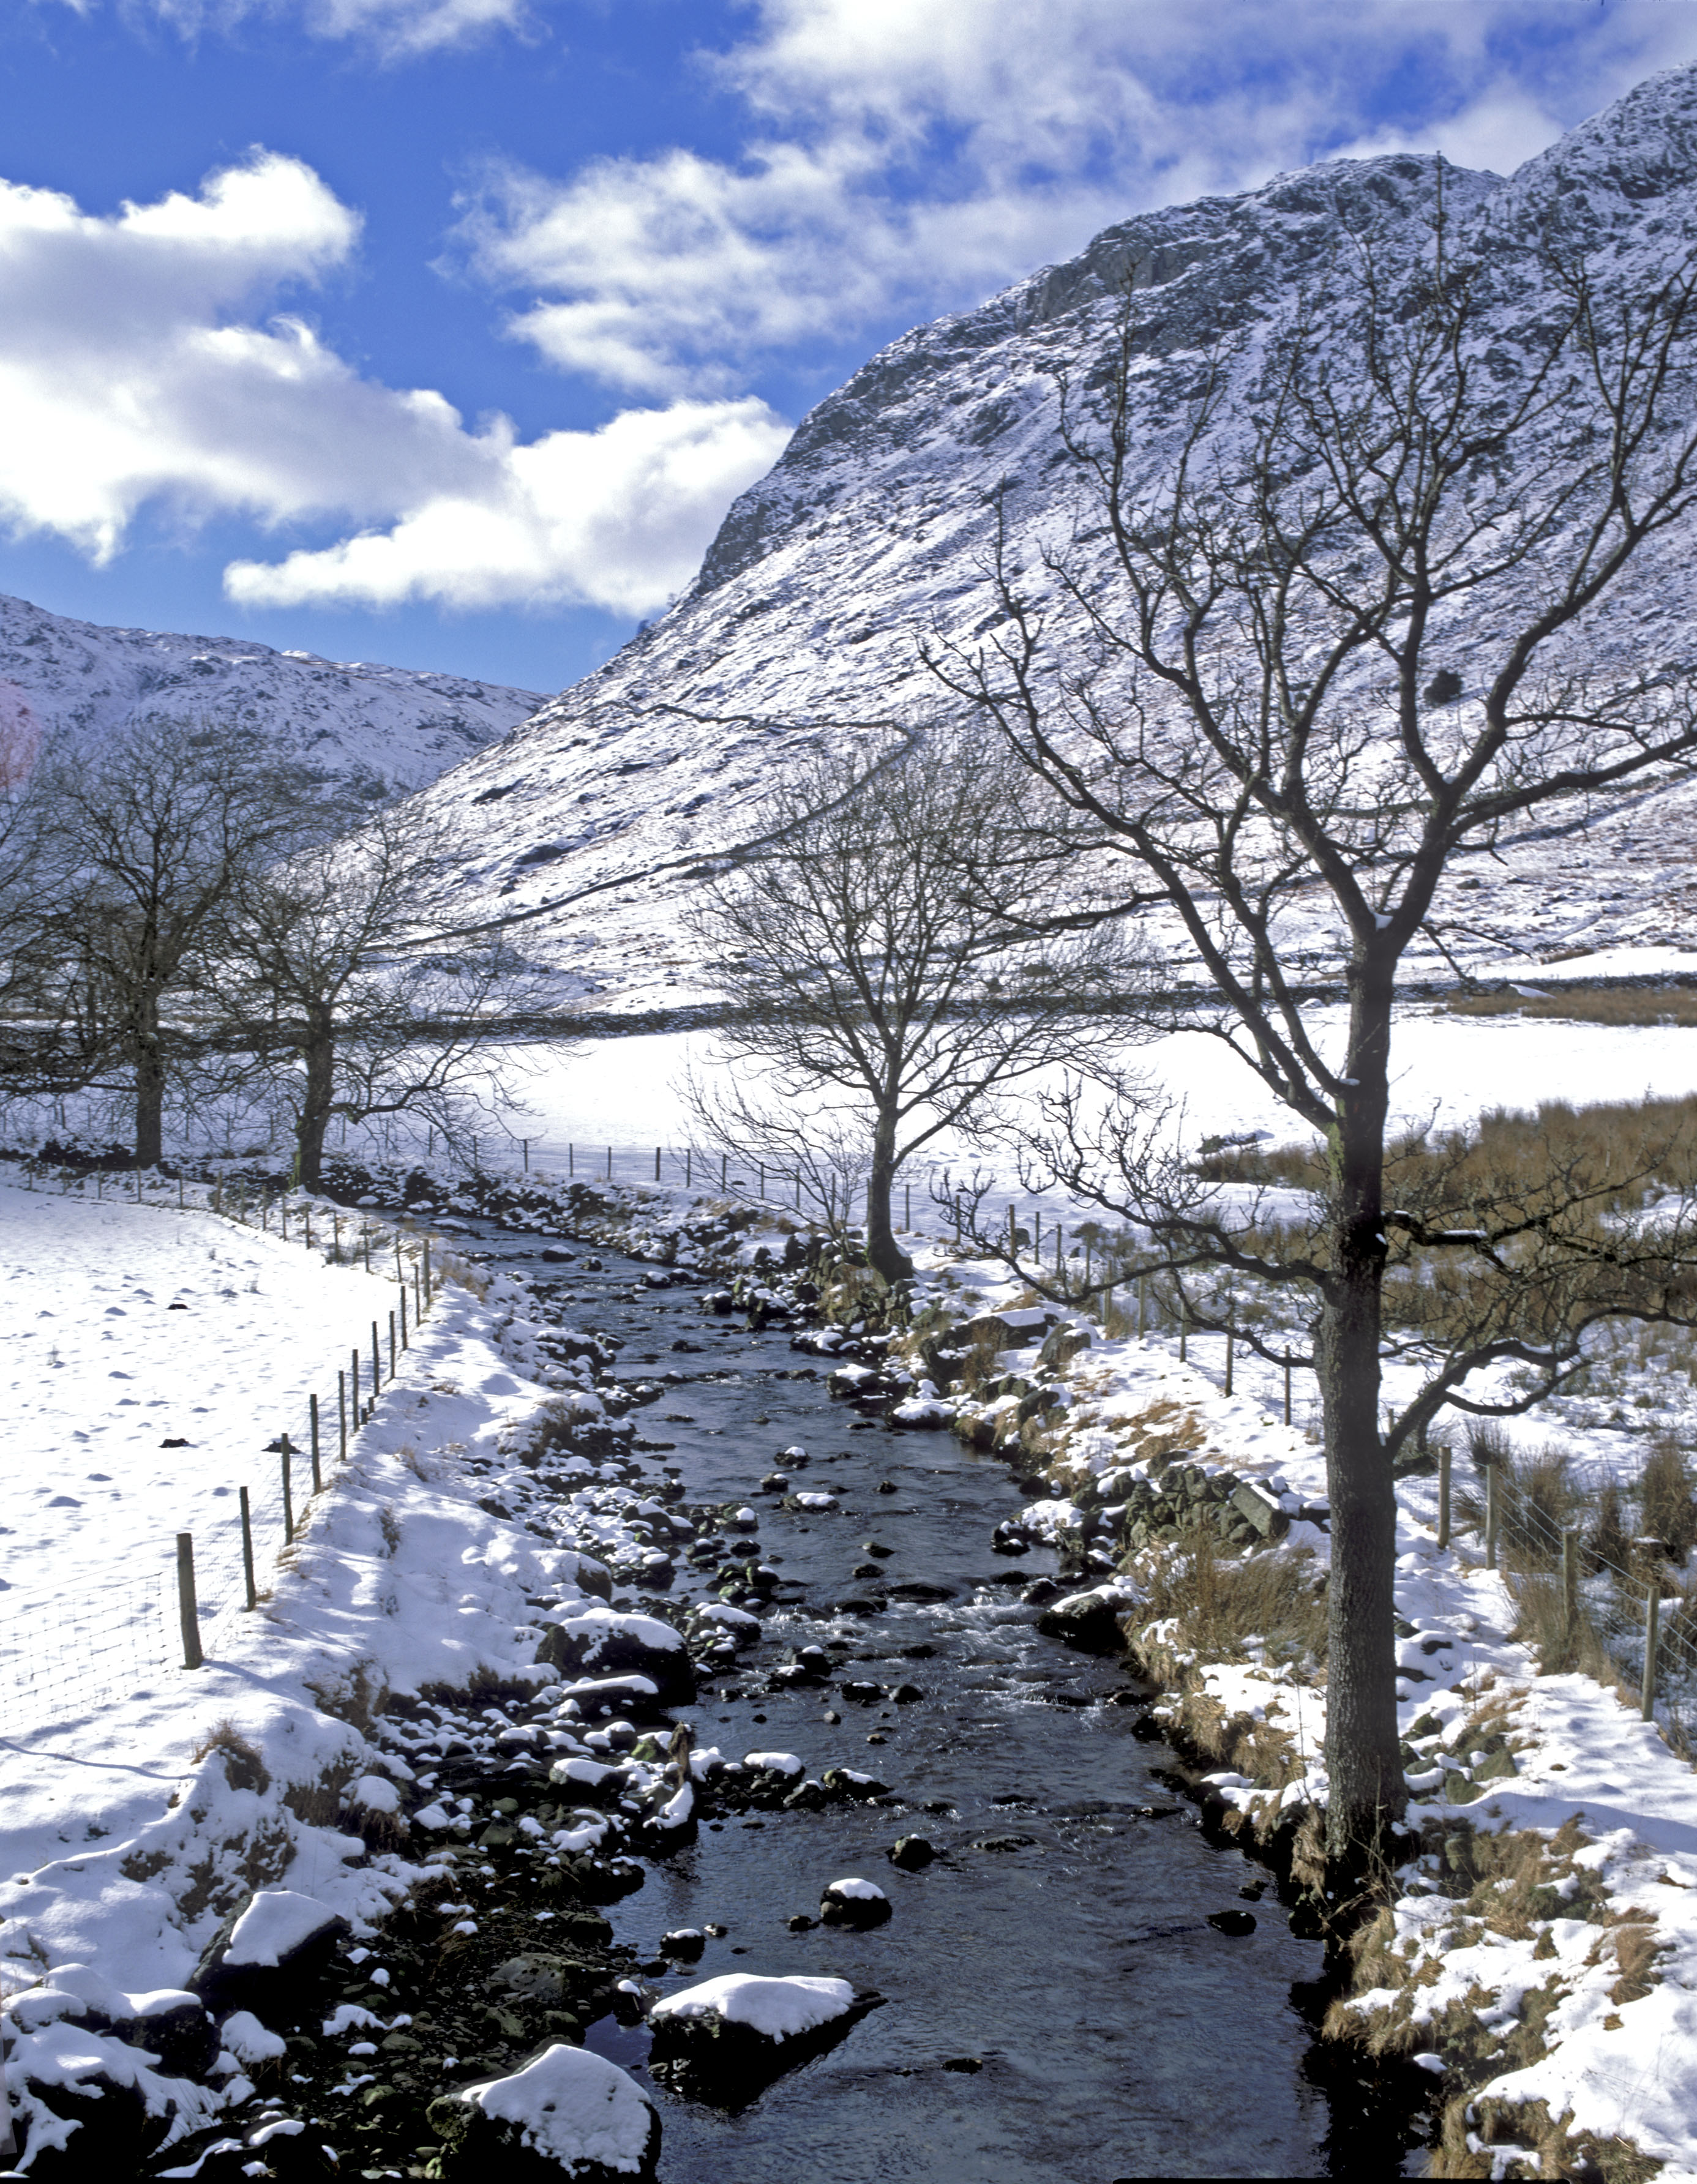 Wyth Burn covered in snow. A snowy scene next to the Southern shore of Thirlmere.